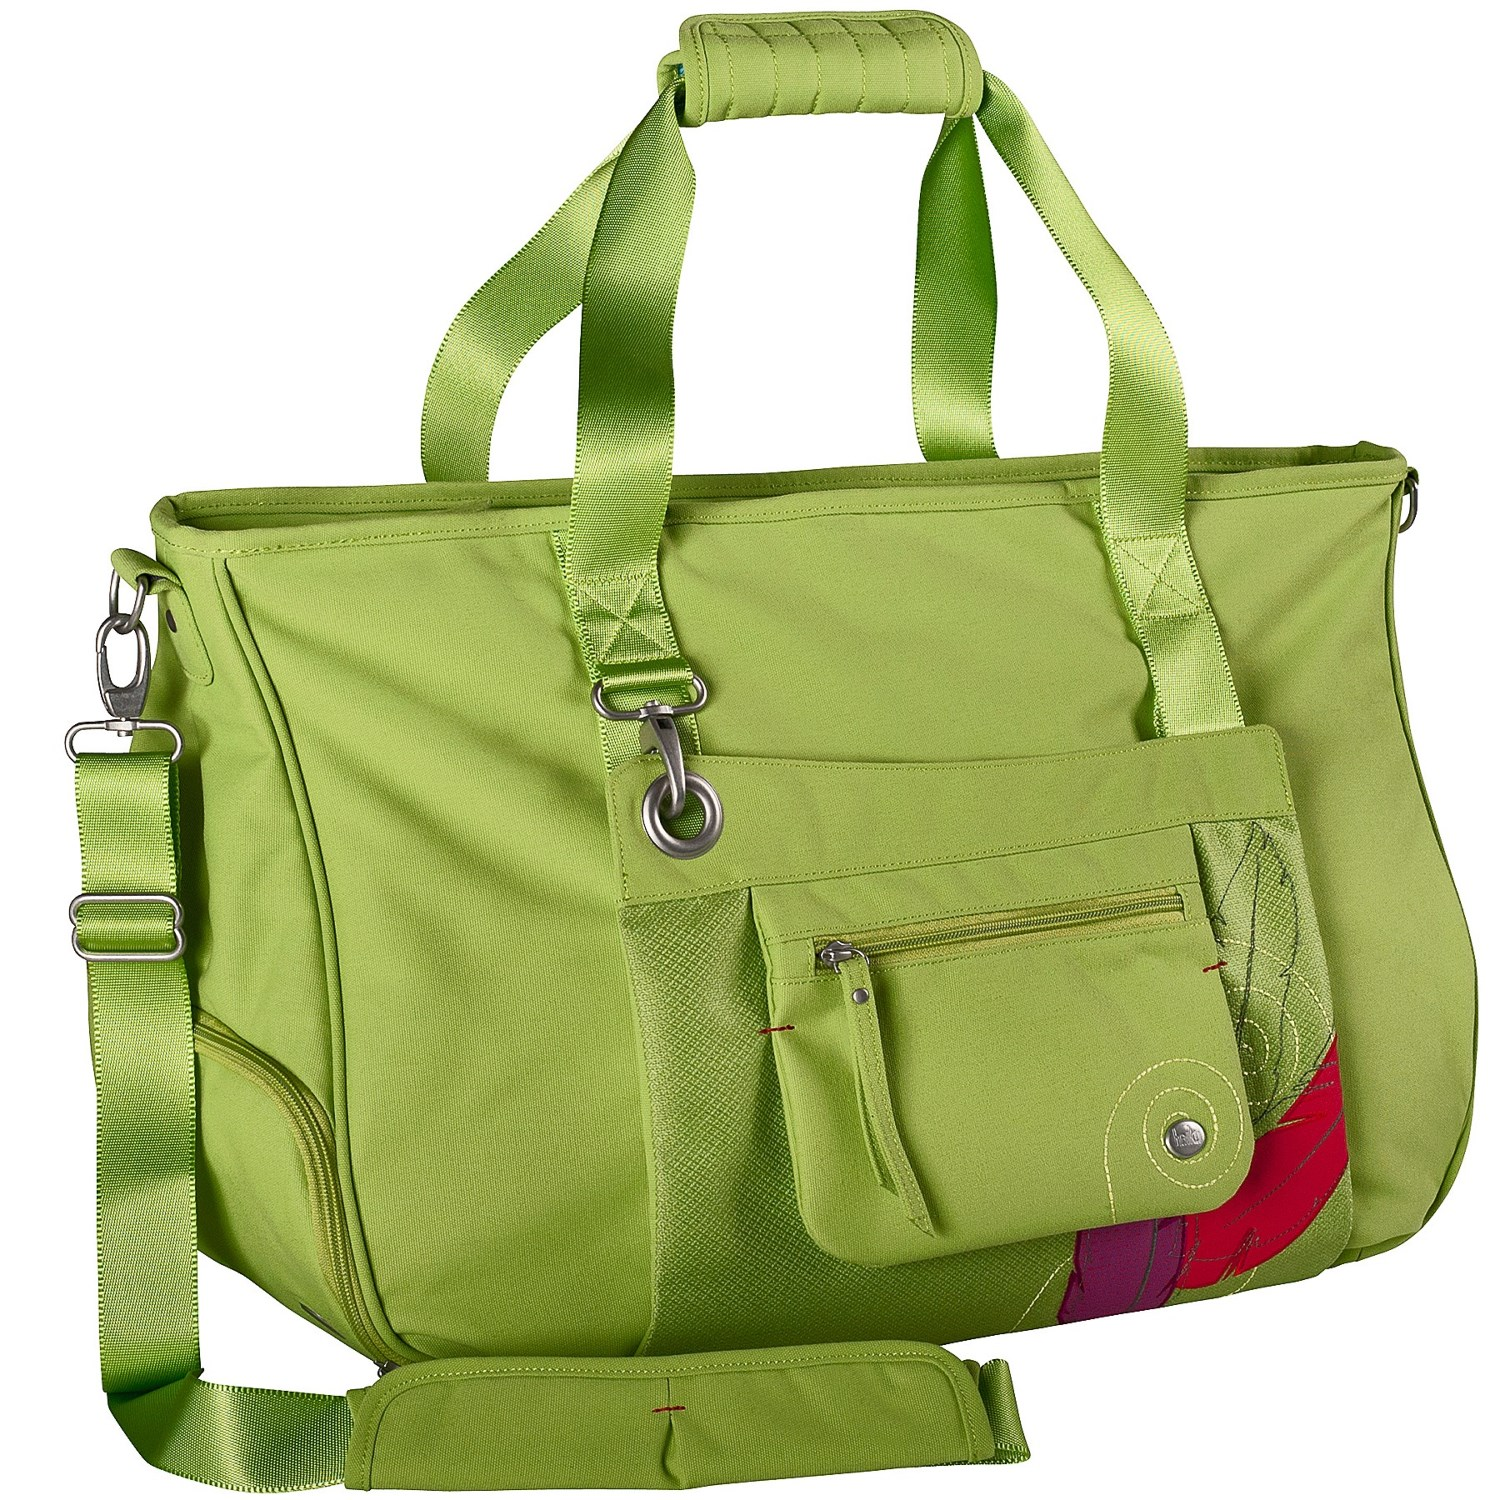 Beautiful A Good Weekend Bag Thats Sturdy And Stylish And Not Obscenely Expensive